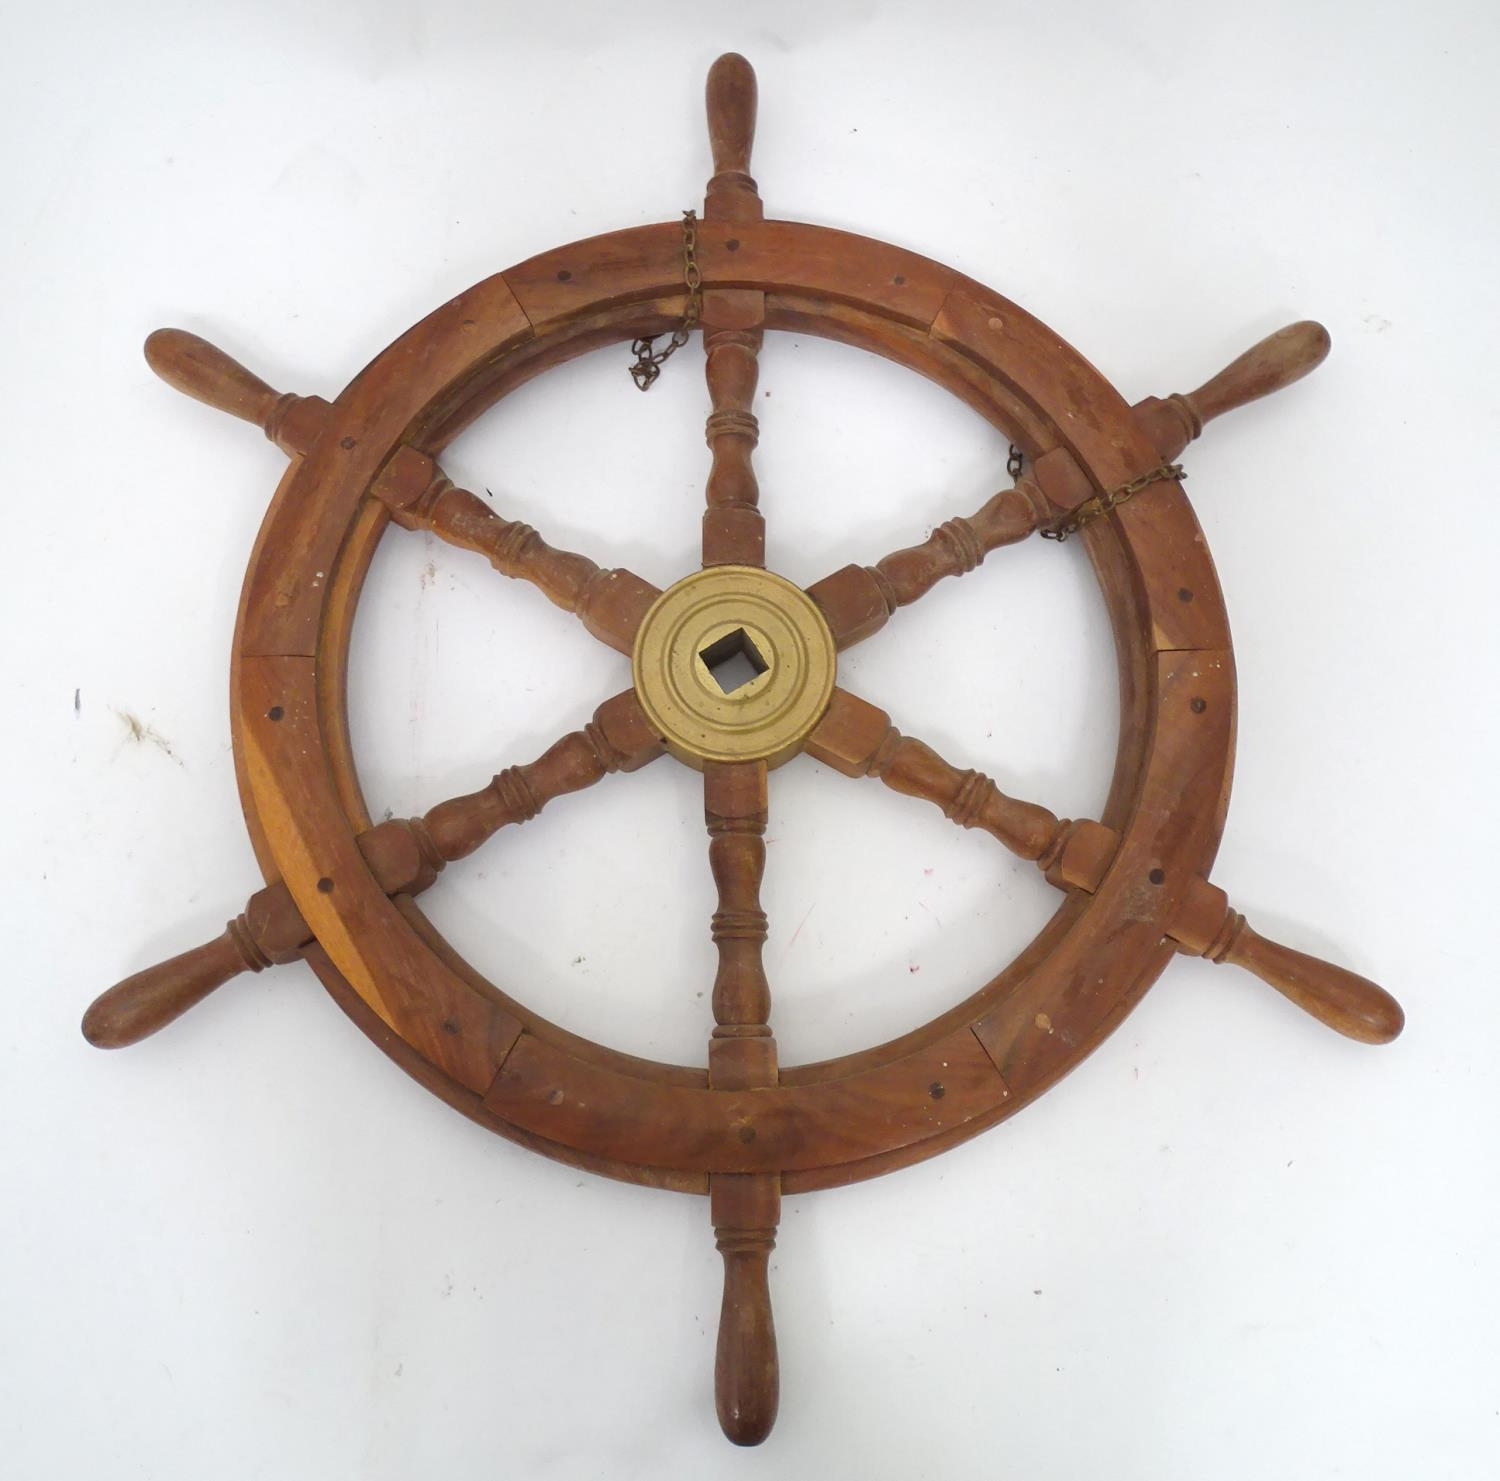 A teak and brass ships wheel Please Note - we do not make reference to the condition of lots - Image 2 of 4